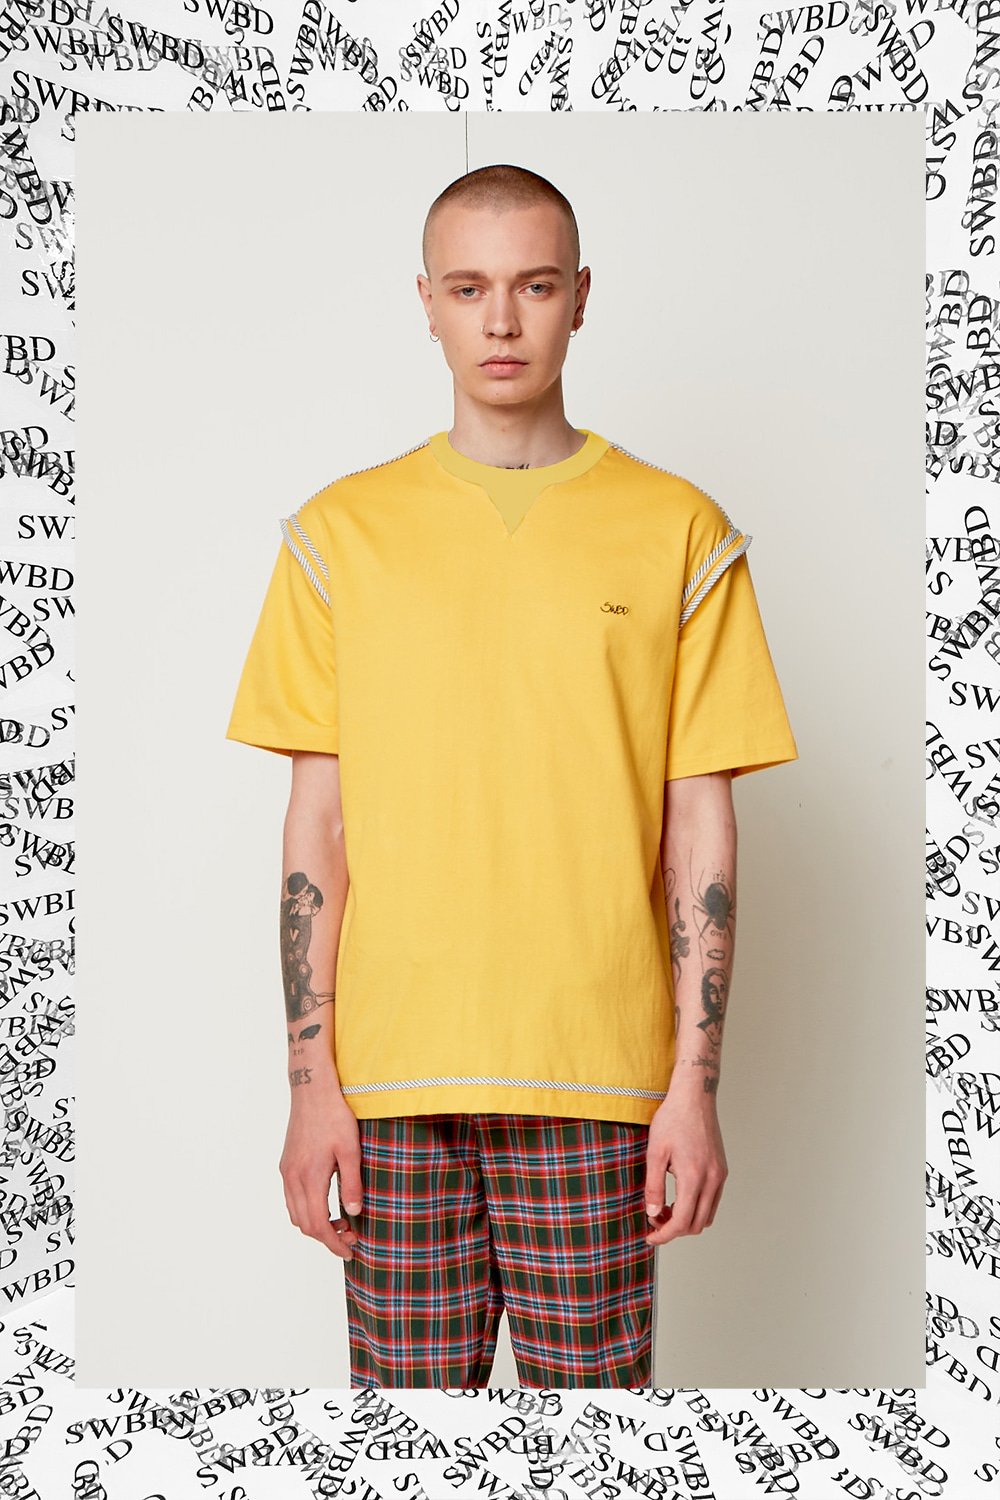 TAPE SWBD TEE YELLOW